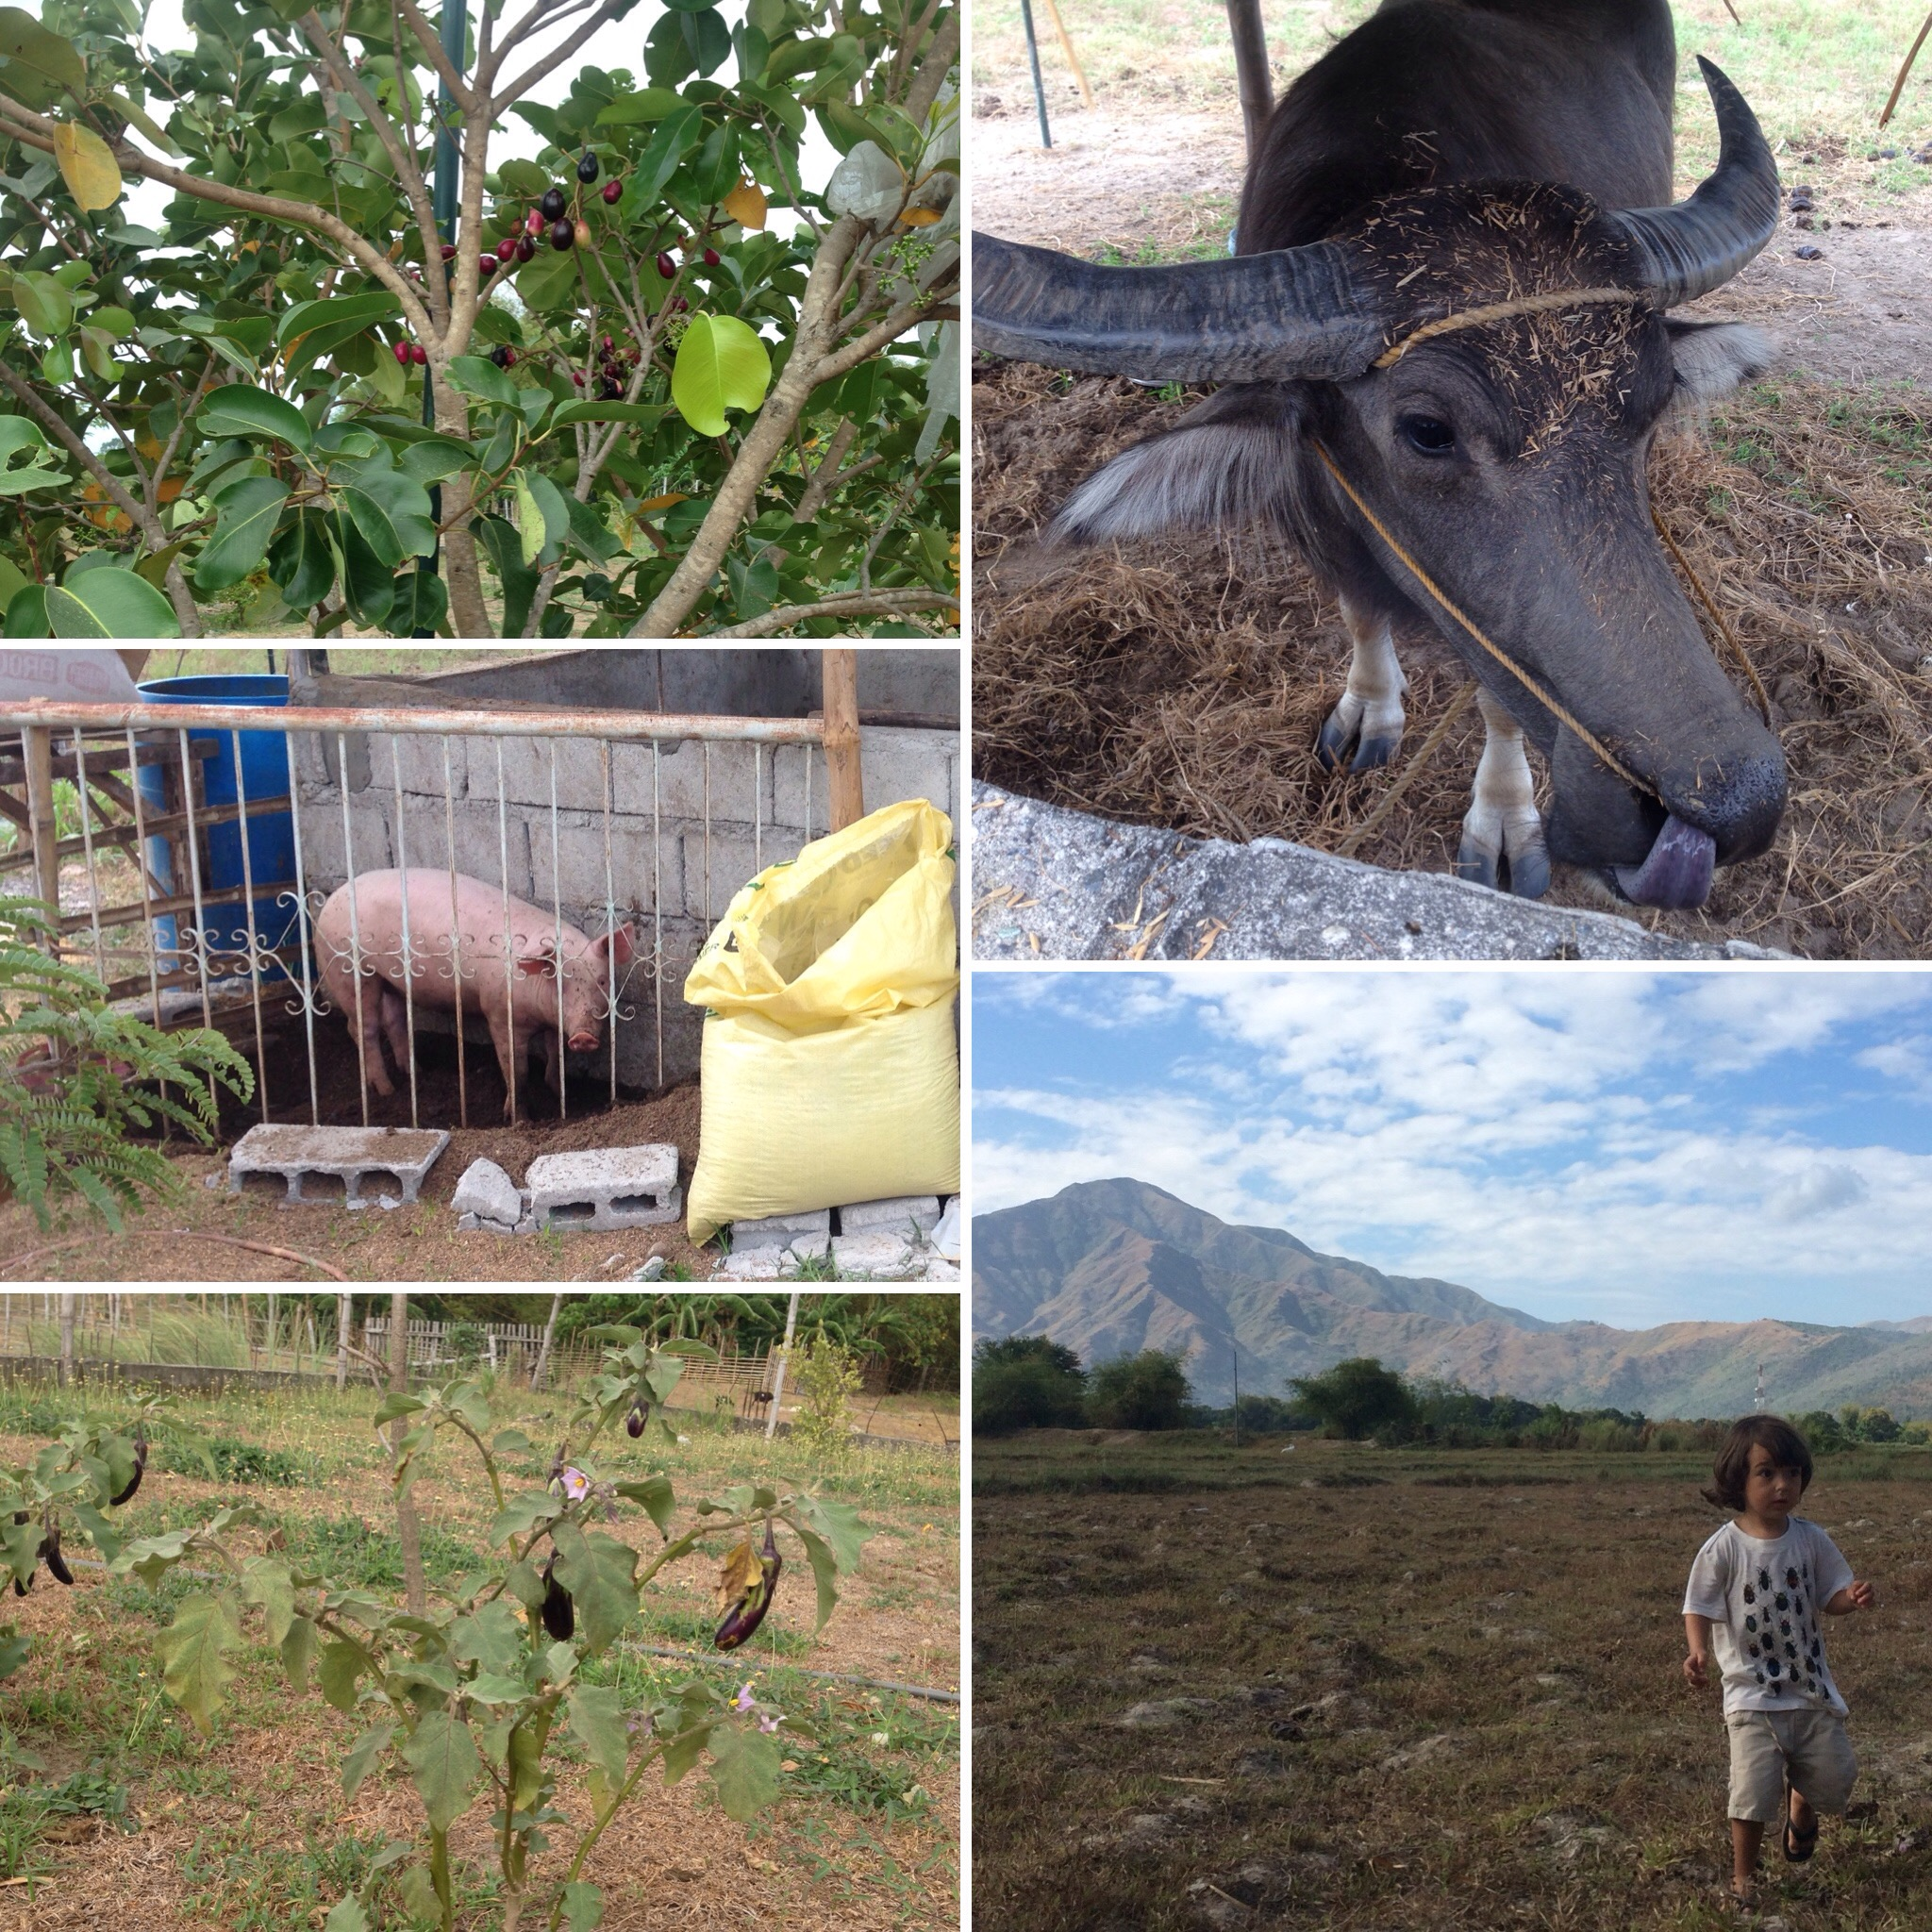 Fruit tree, carabao, fields, eggplant tree, pig